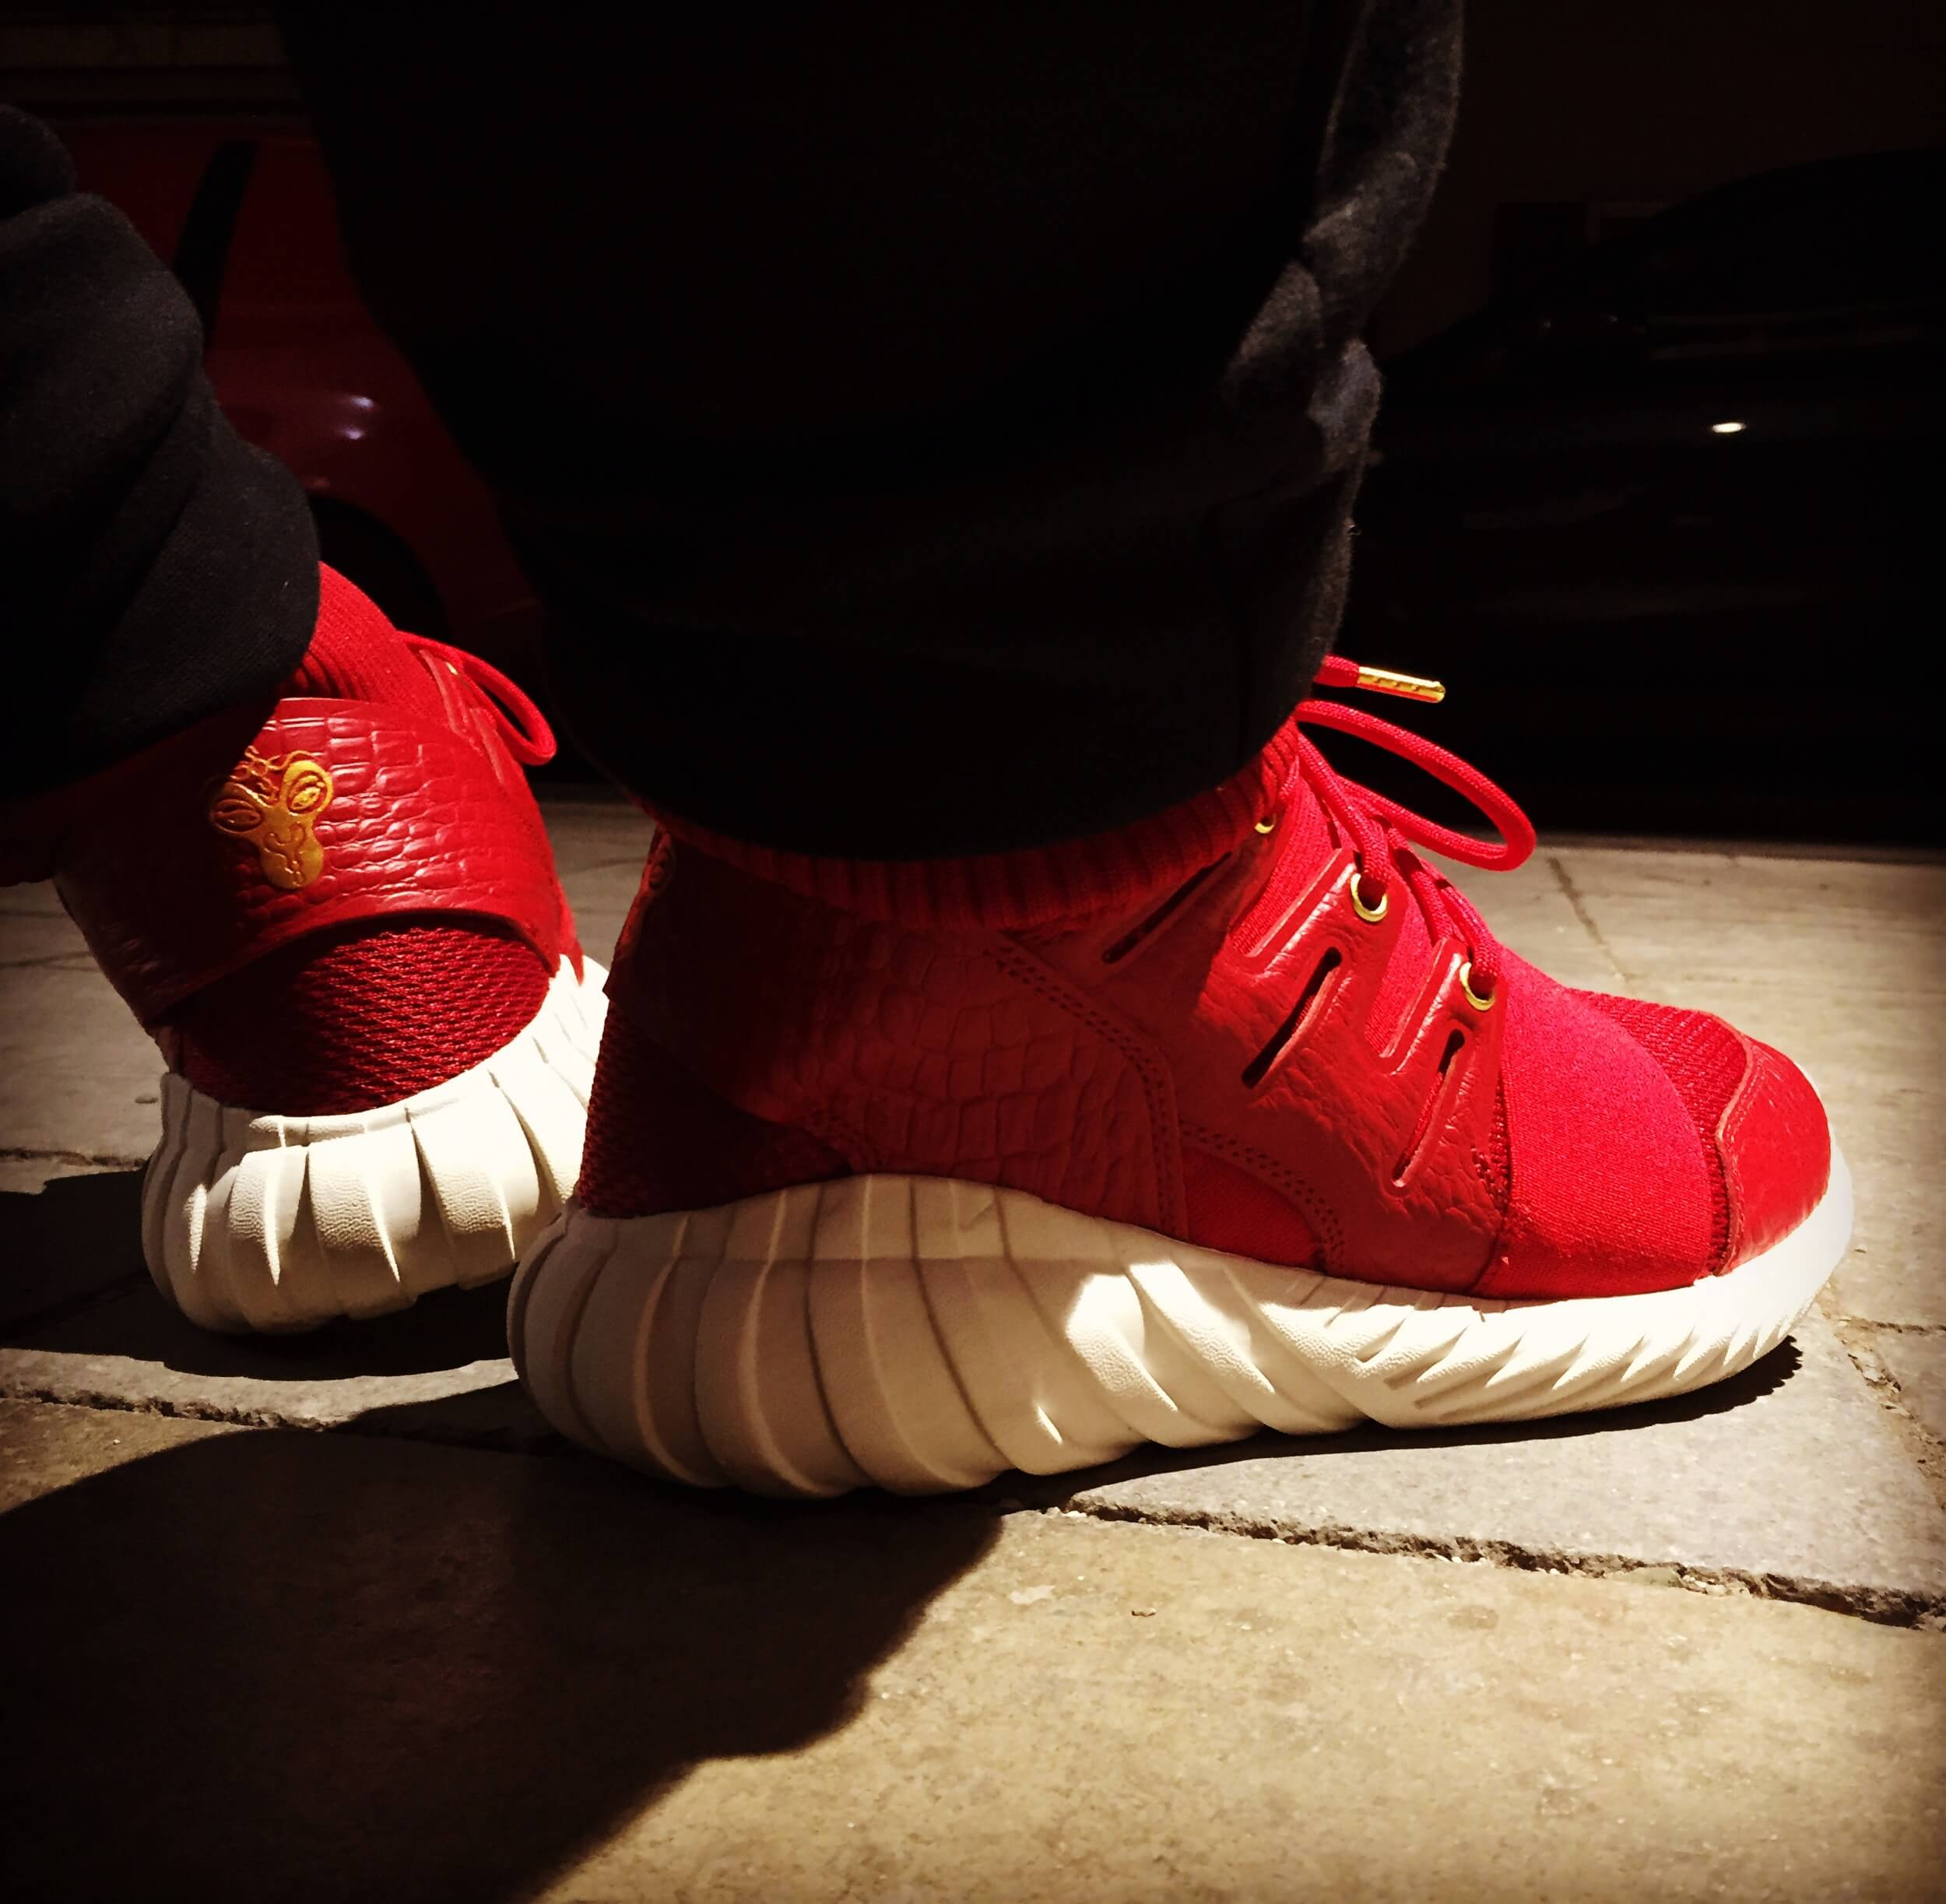 Adidas-Tubular-Doom-Chinese-New-Year-Rear-View-Benstah-Onfeet